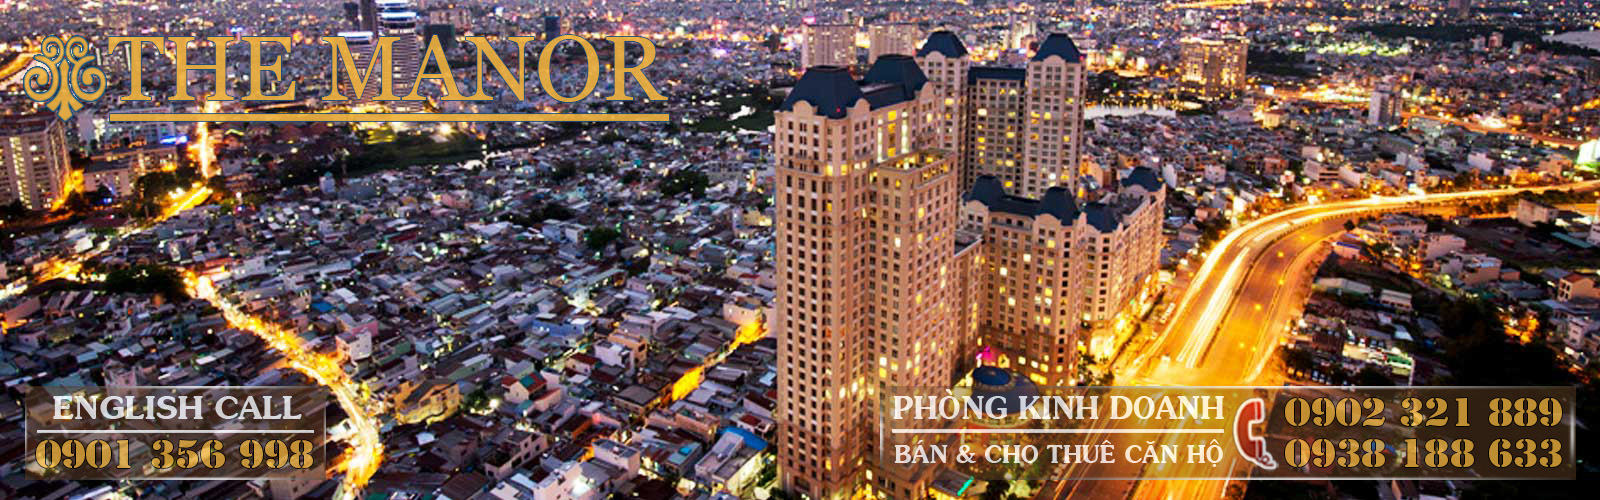 the manor 2 | nguyen huu canh